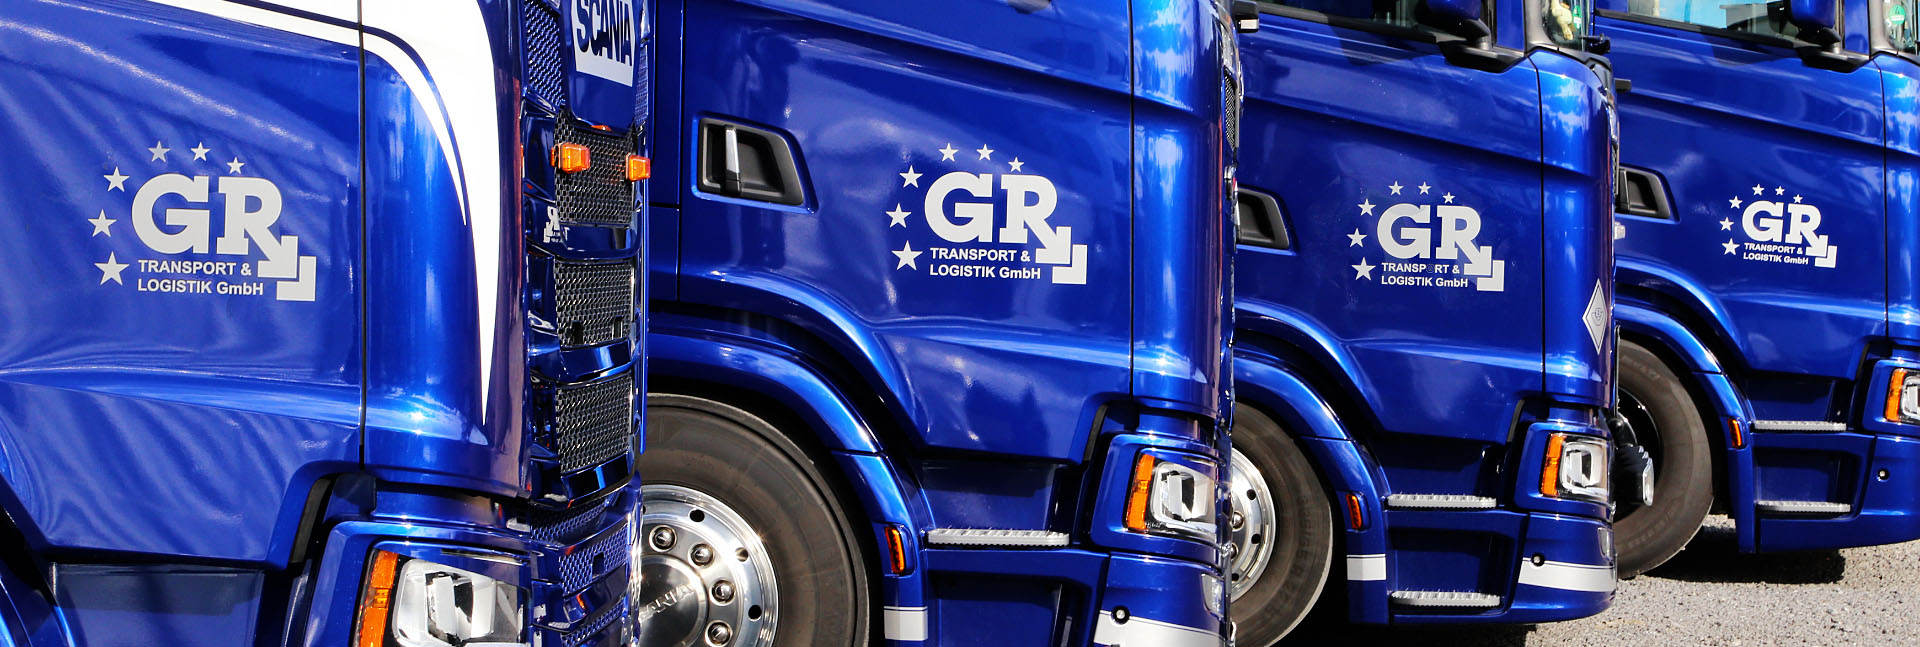 GR Transport & Logistik GmbH Slider